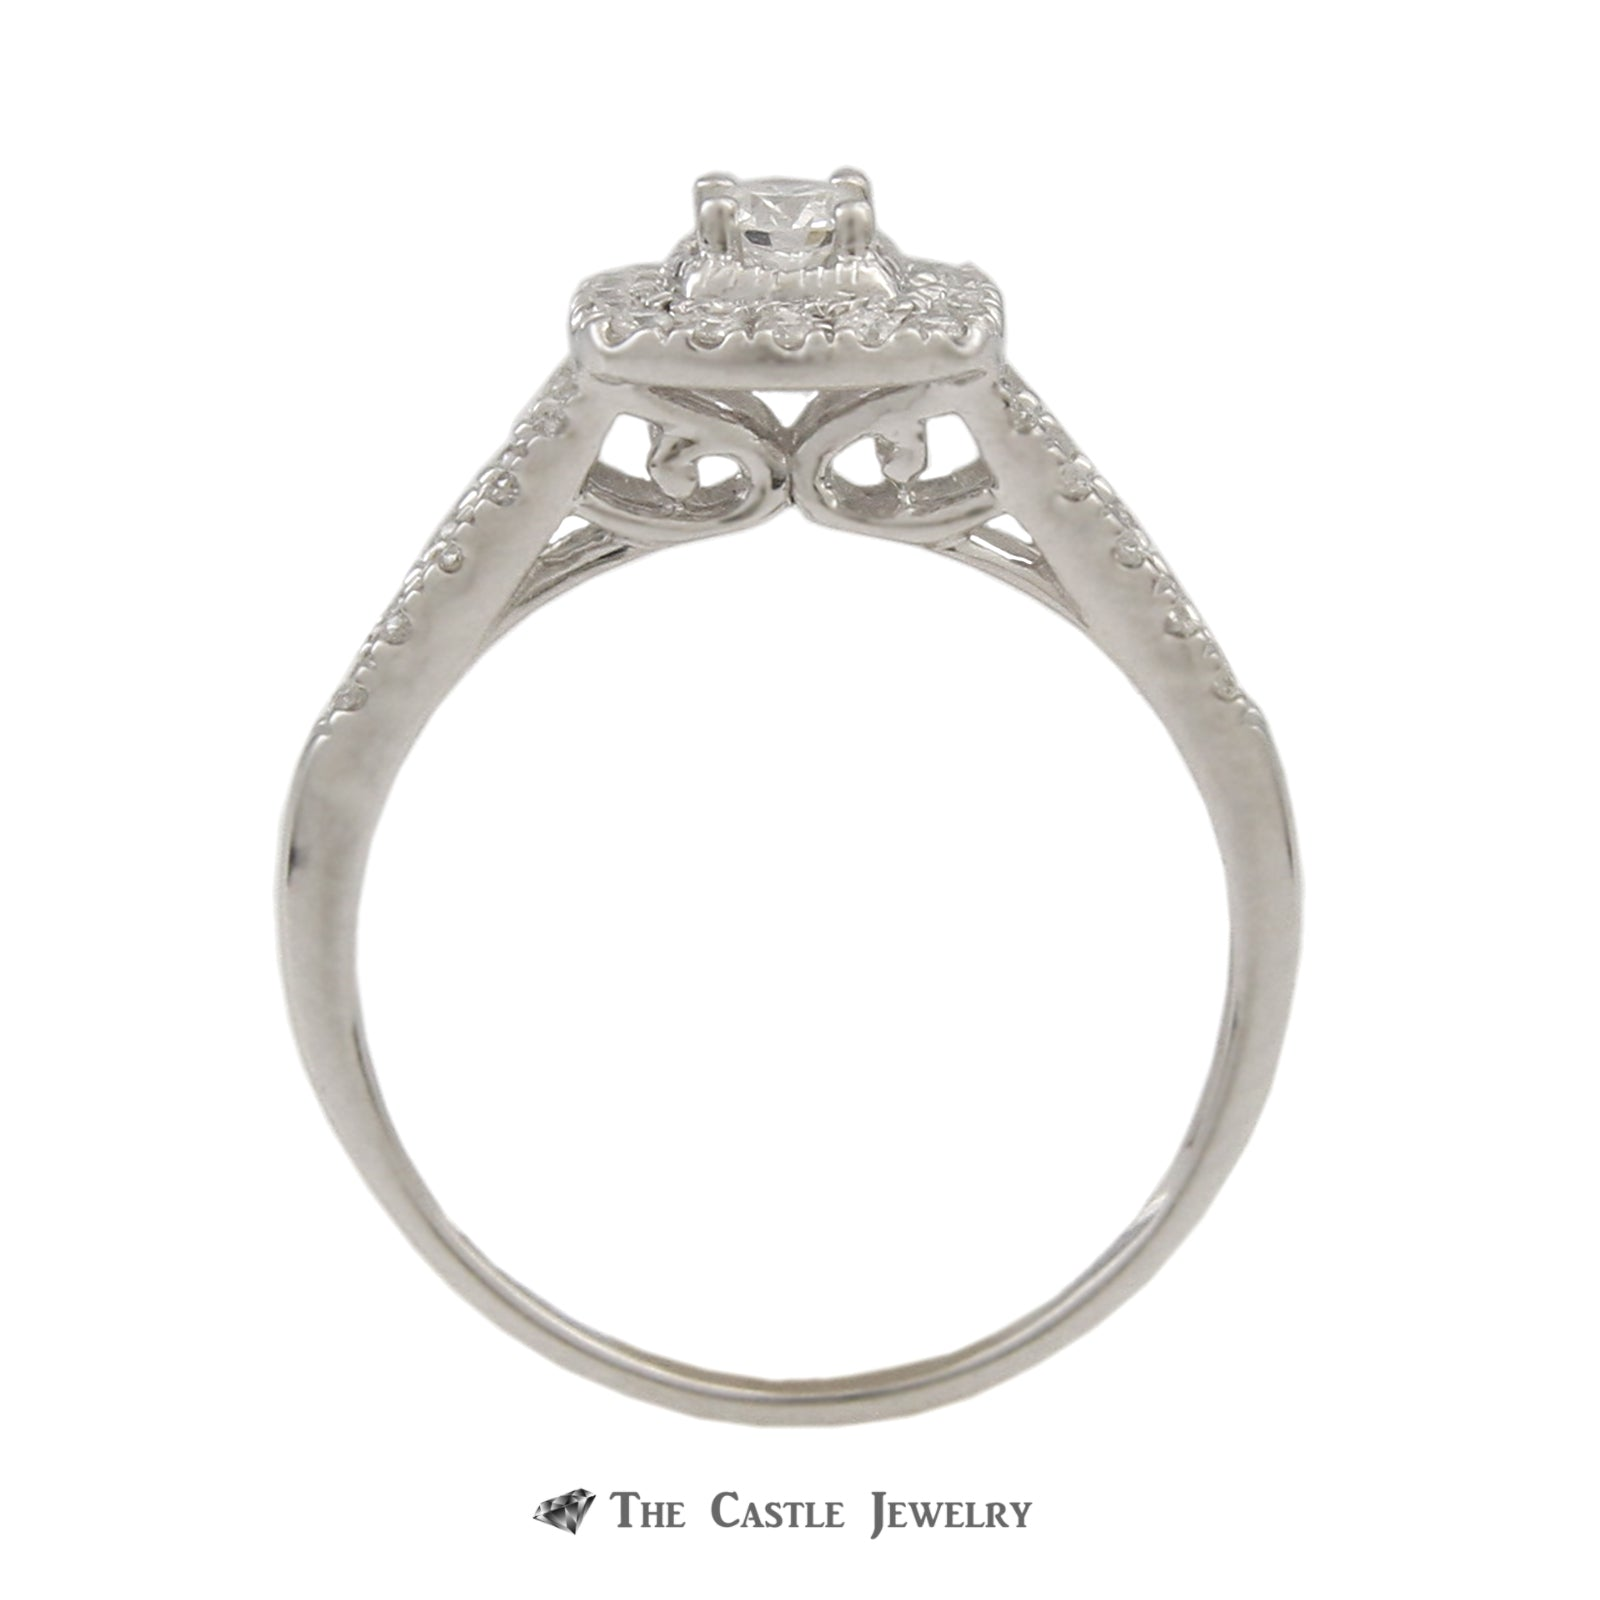 SPECIAL! Crown Collection .50cttw Bridal Set w/ Round Diamond Center & Cushion Shaped Bezel in 14k-1